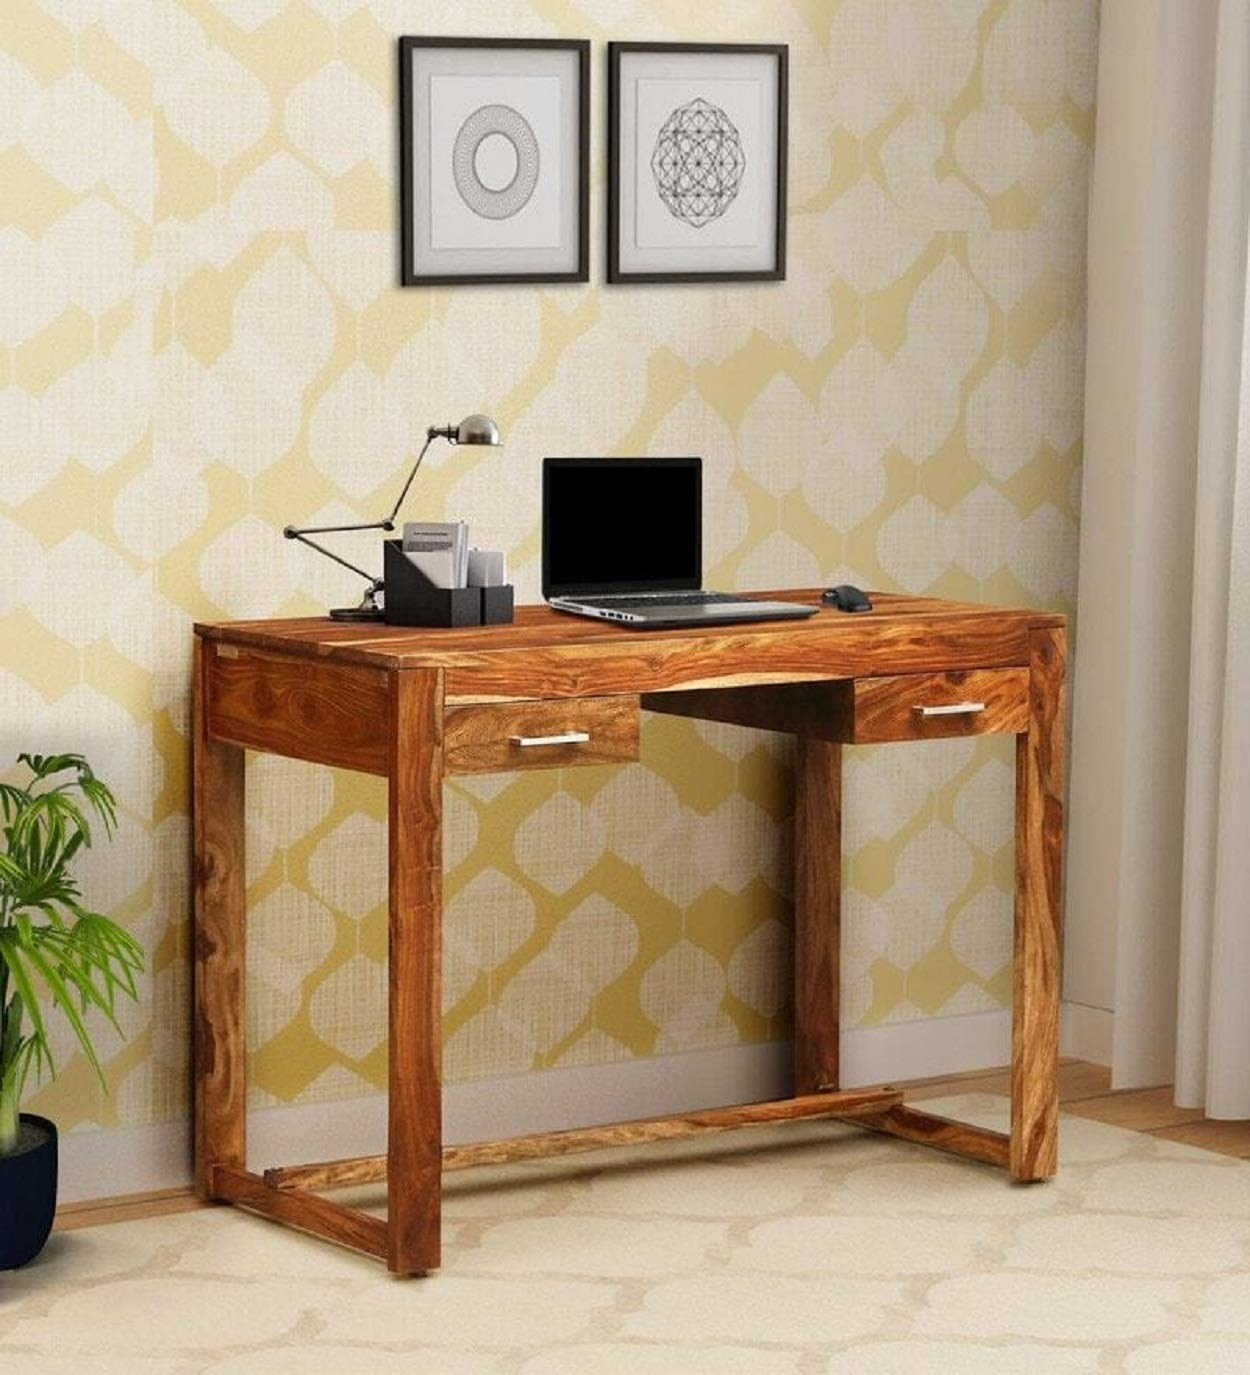 A room with a wooden desk that has a laptop and stationery on it